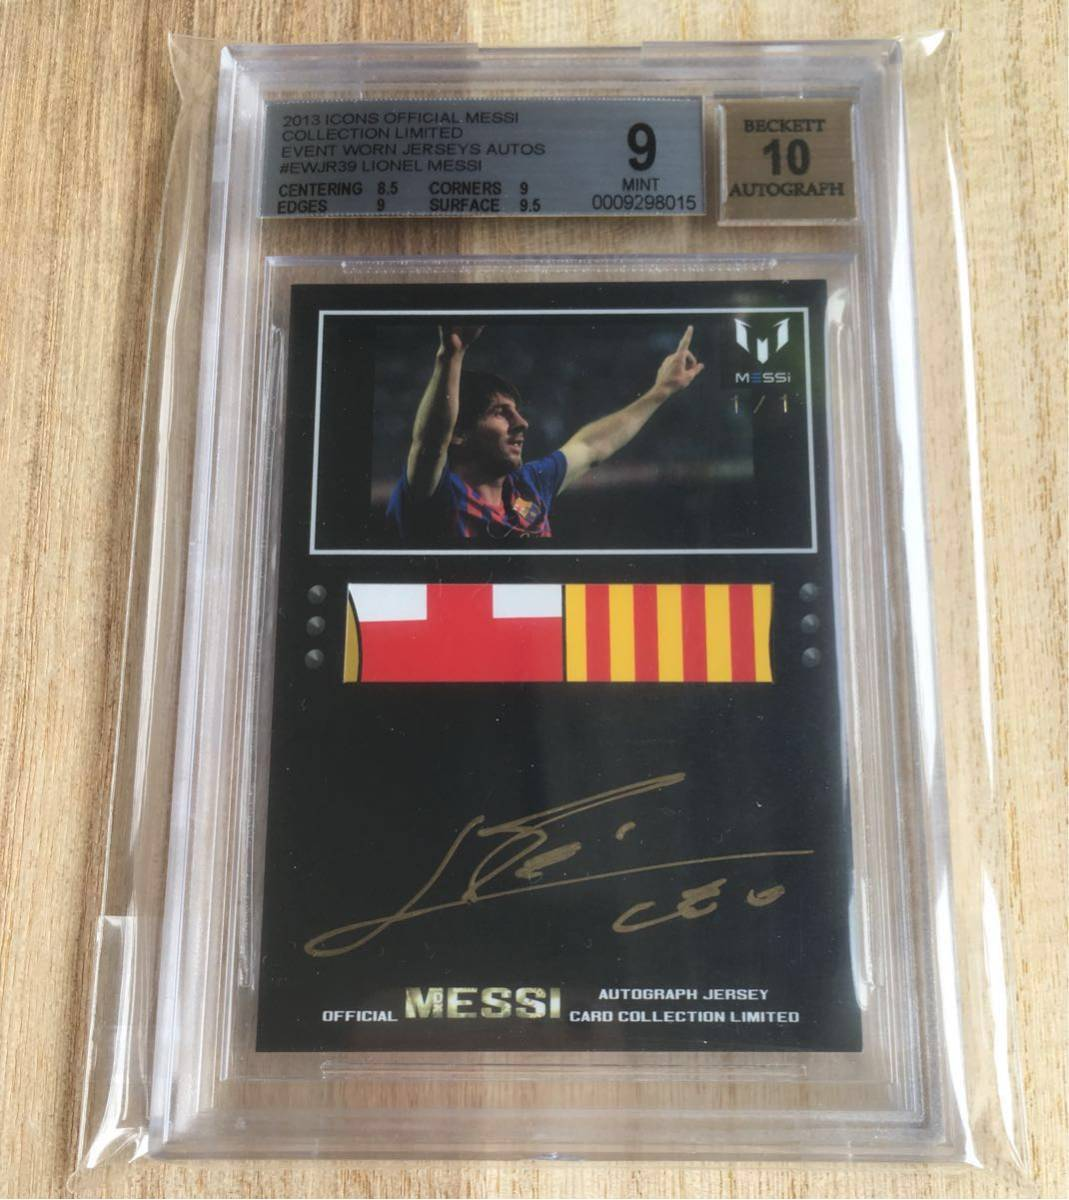 2013 Icons Official Messi Card Collection MESSI AUTO LOGO PATCH 1/1 メッシ 実使用バルセロナジャージロゴ サイン